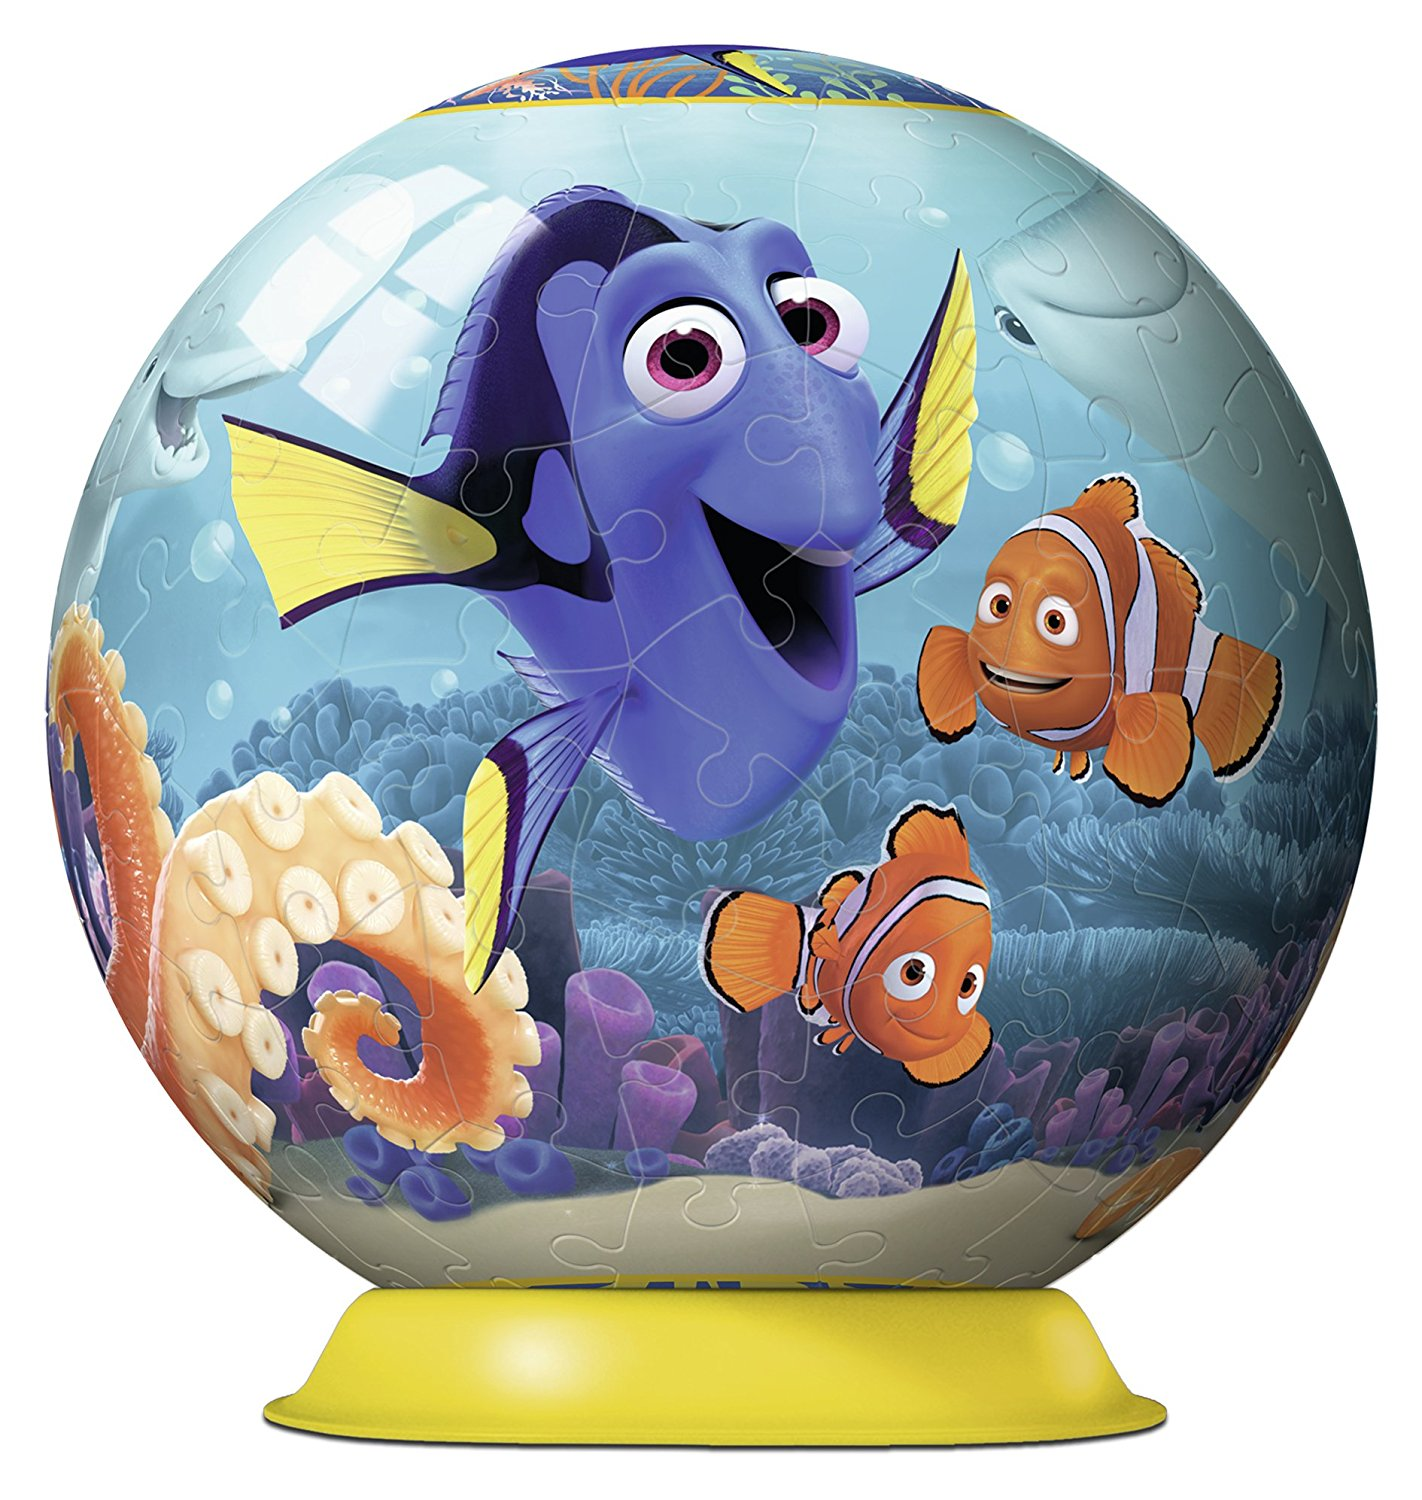 3D Jigsaw Puzzle - Finding Dory Ravensburger-12264 108 ...